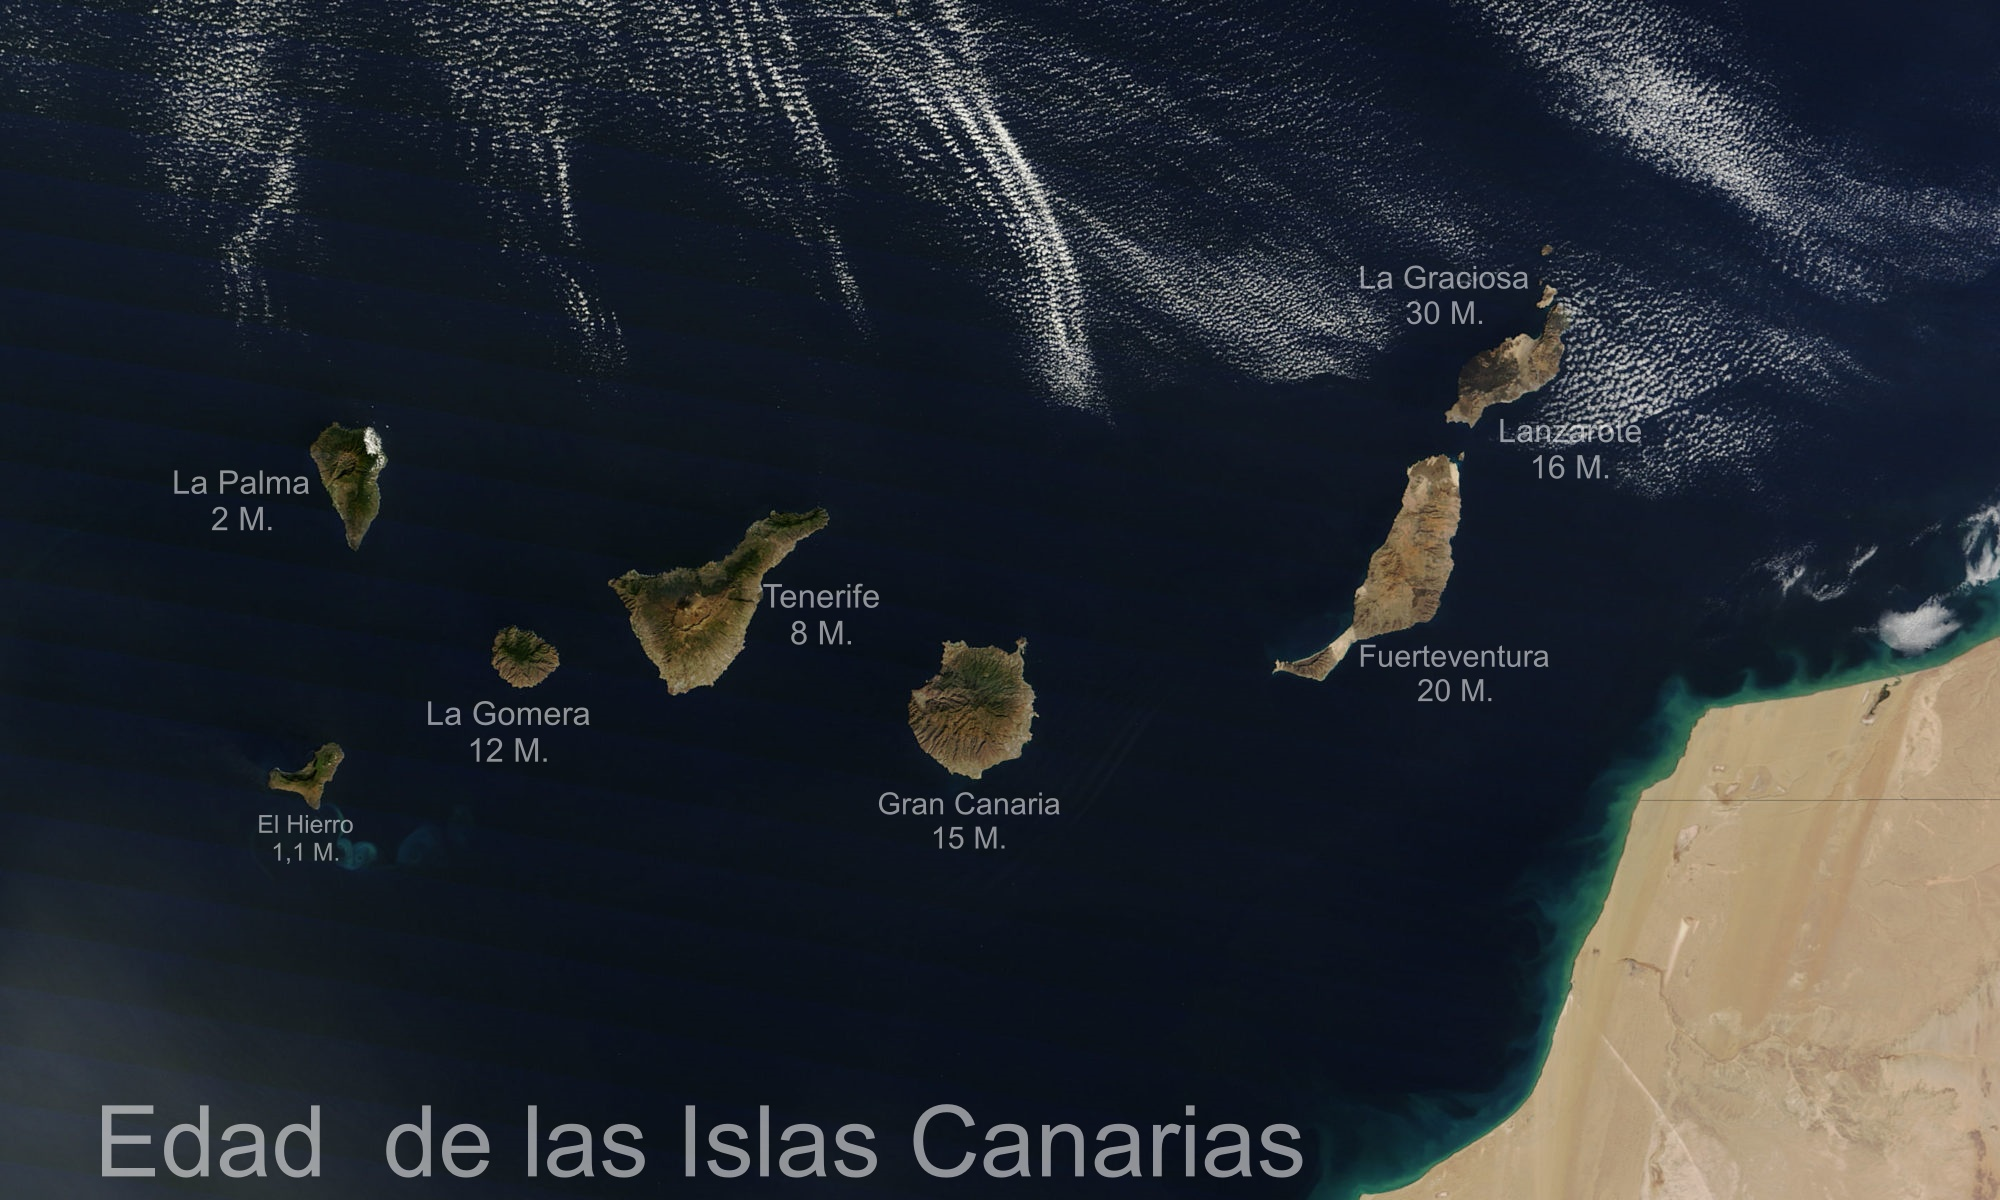 Canary Islands 6630087415 2000x1200